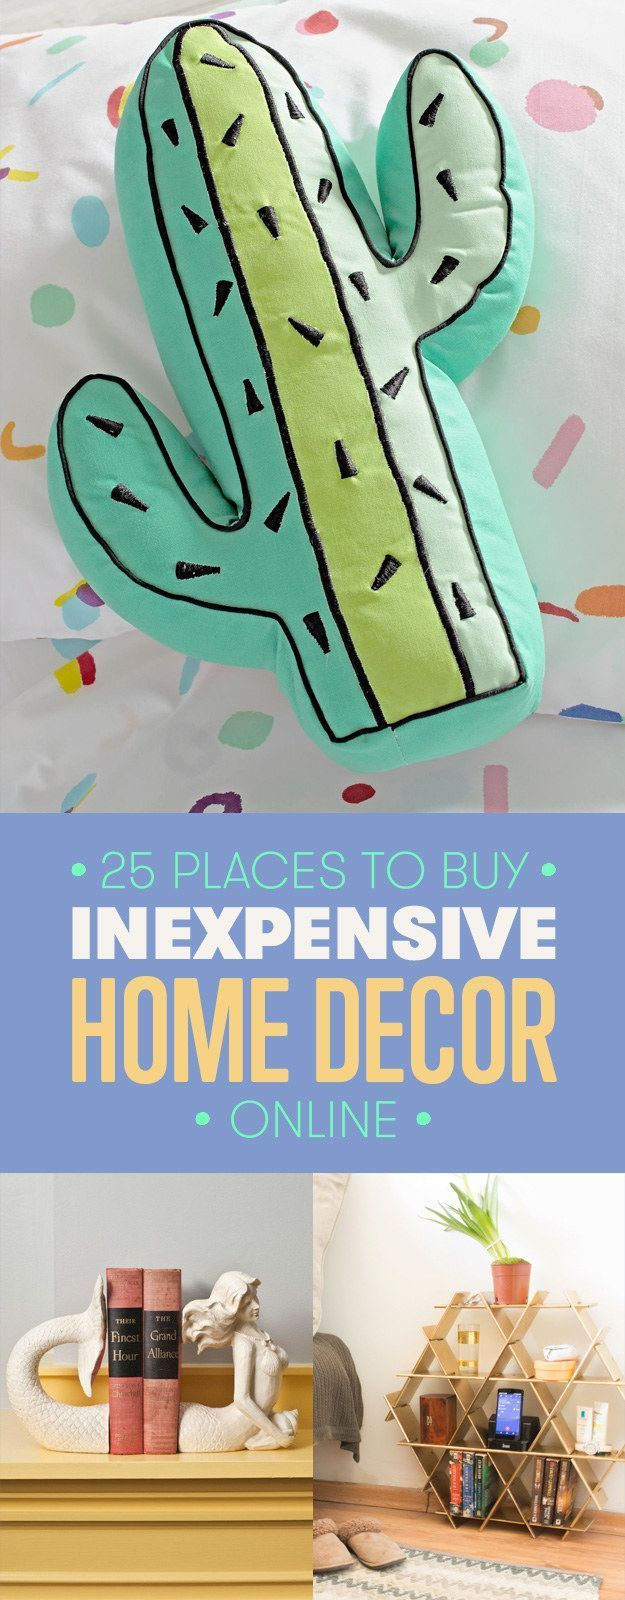 25 of the best places to buy inexpensive home decor online - Best Place For Home Decor